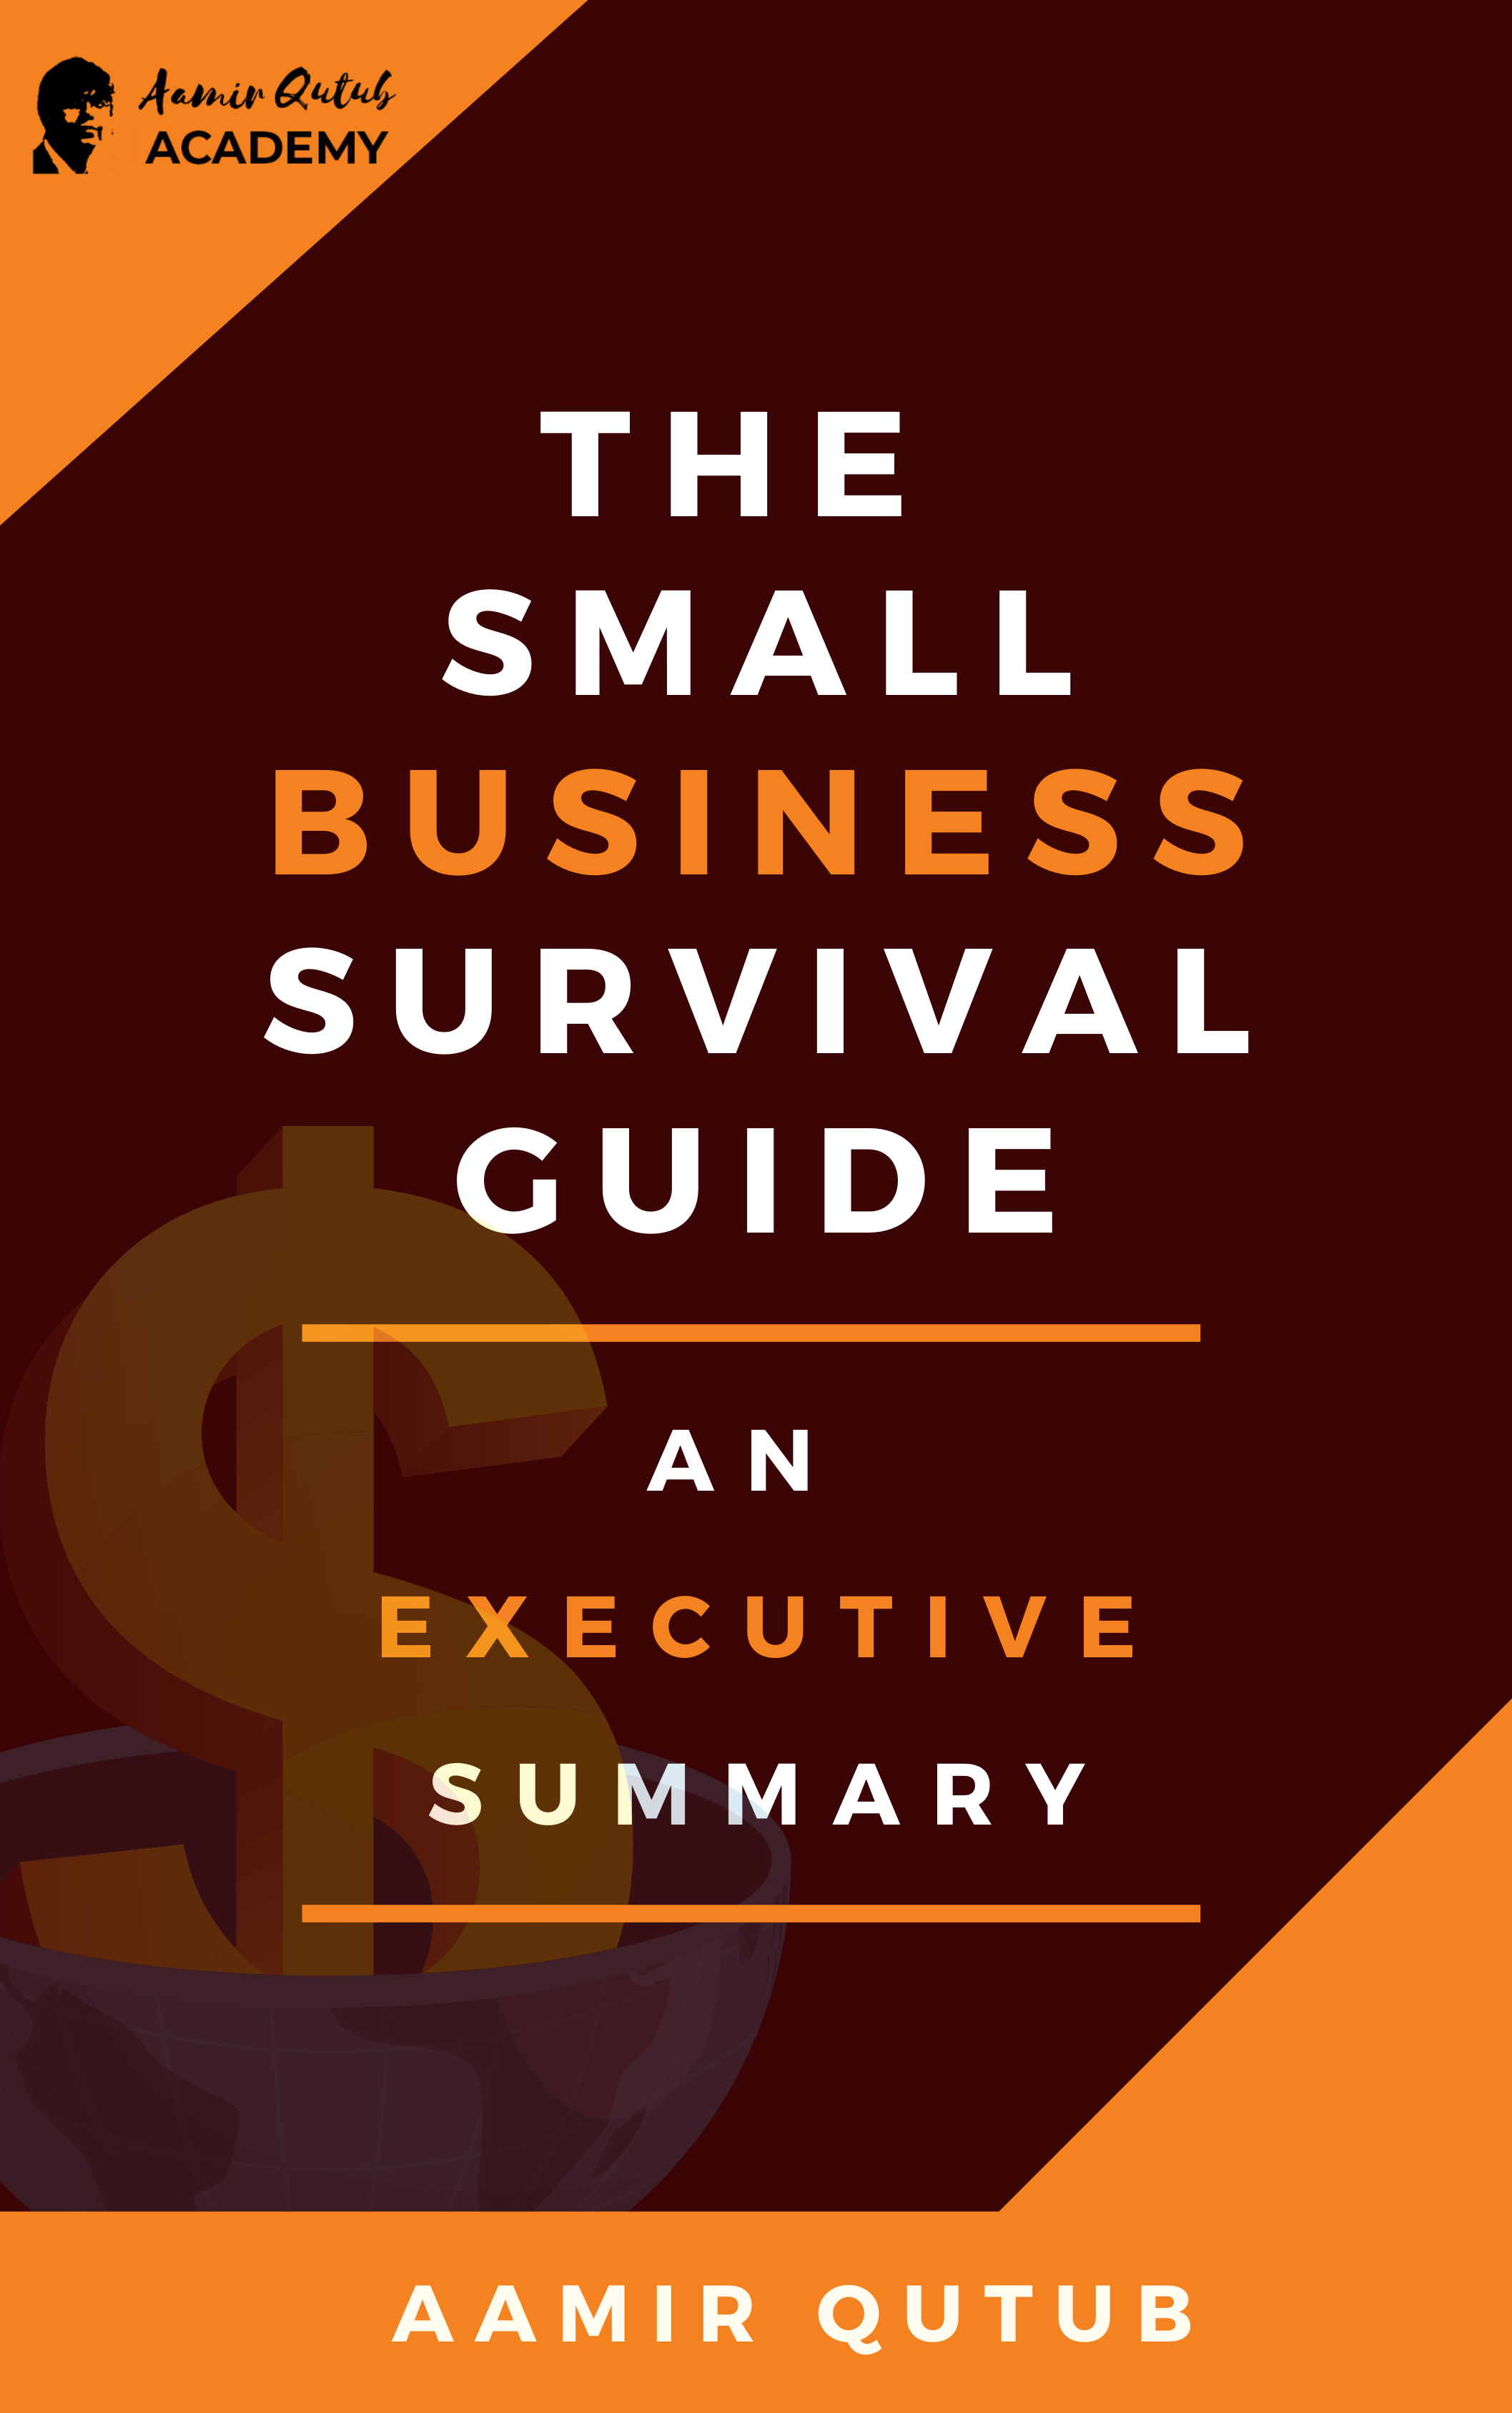 THE-SMALL-BUSINESS-SURVIVAL-GUIDE